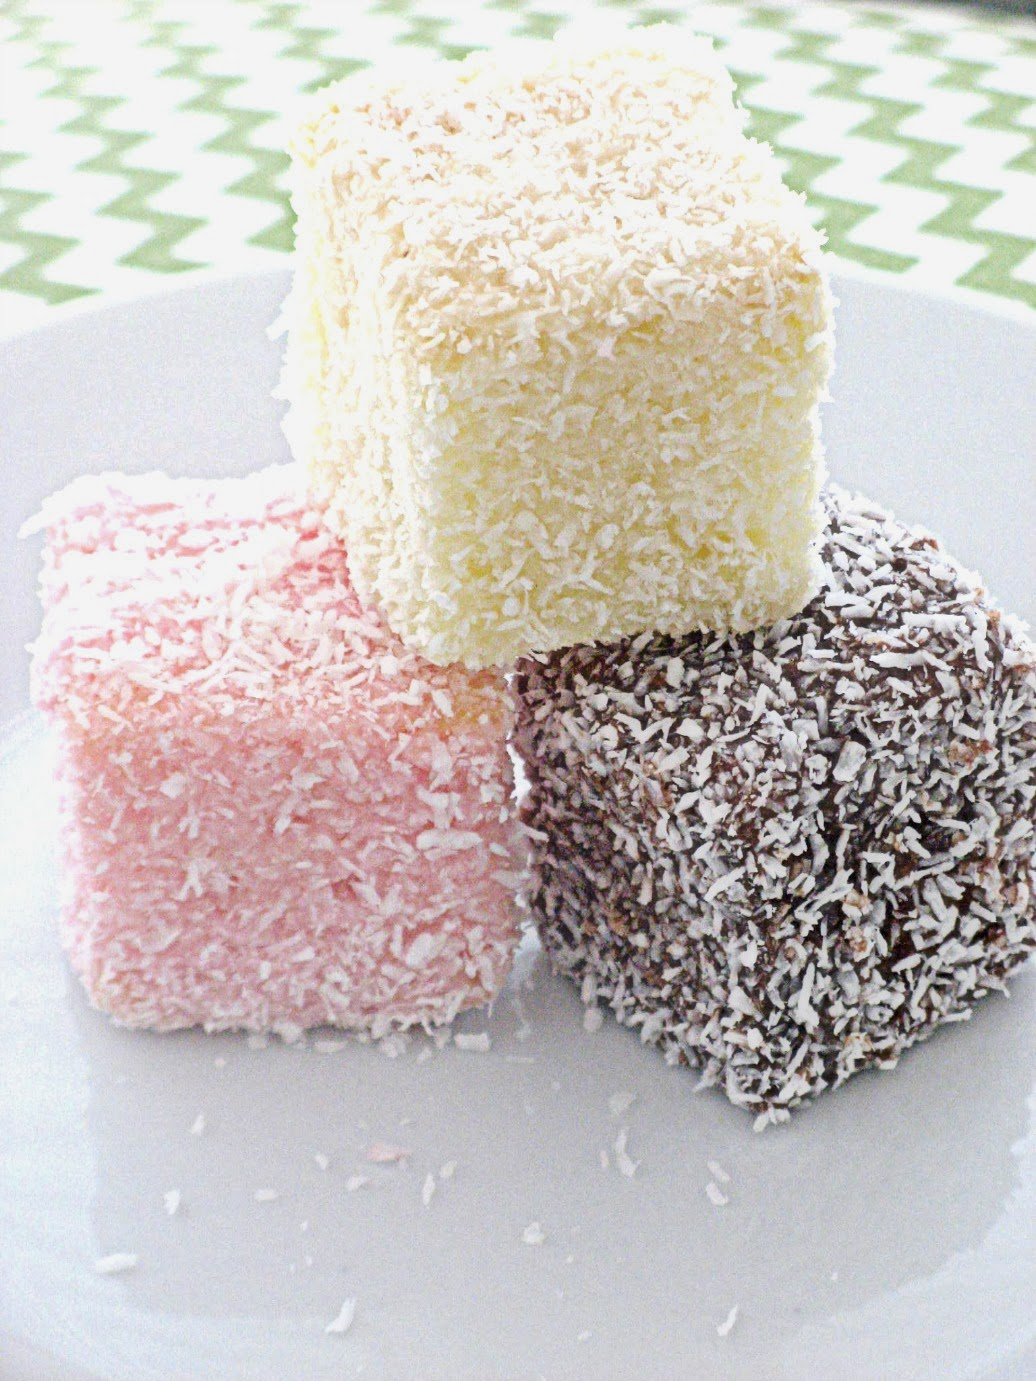 How To Make Lamington Sponge Cake